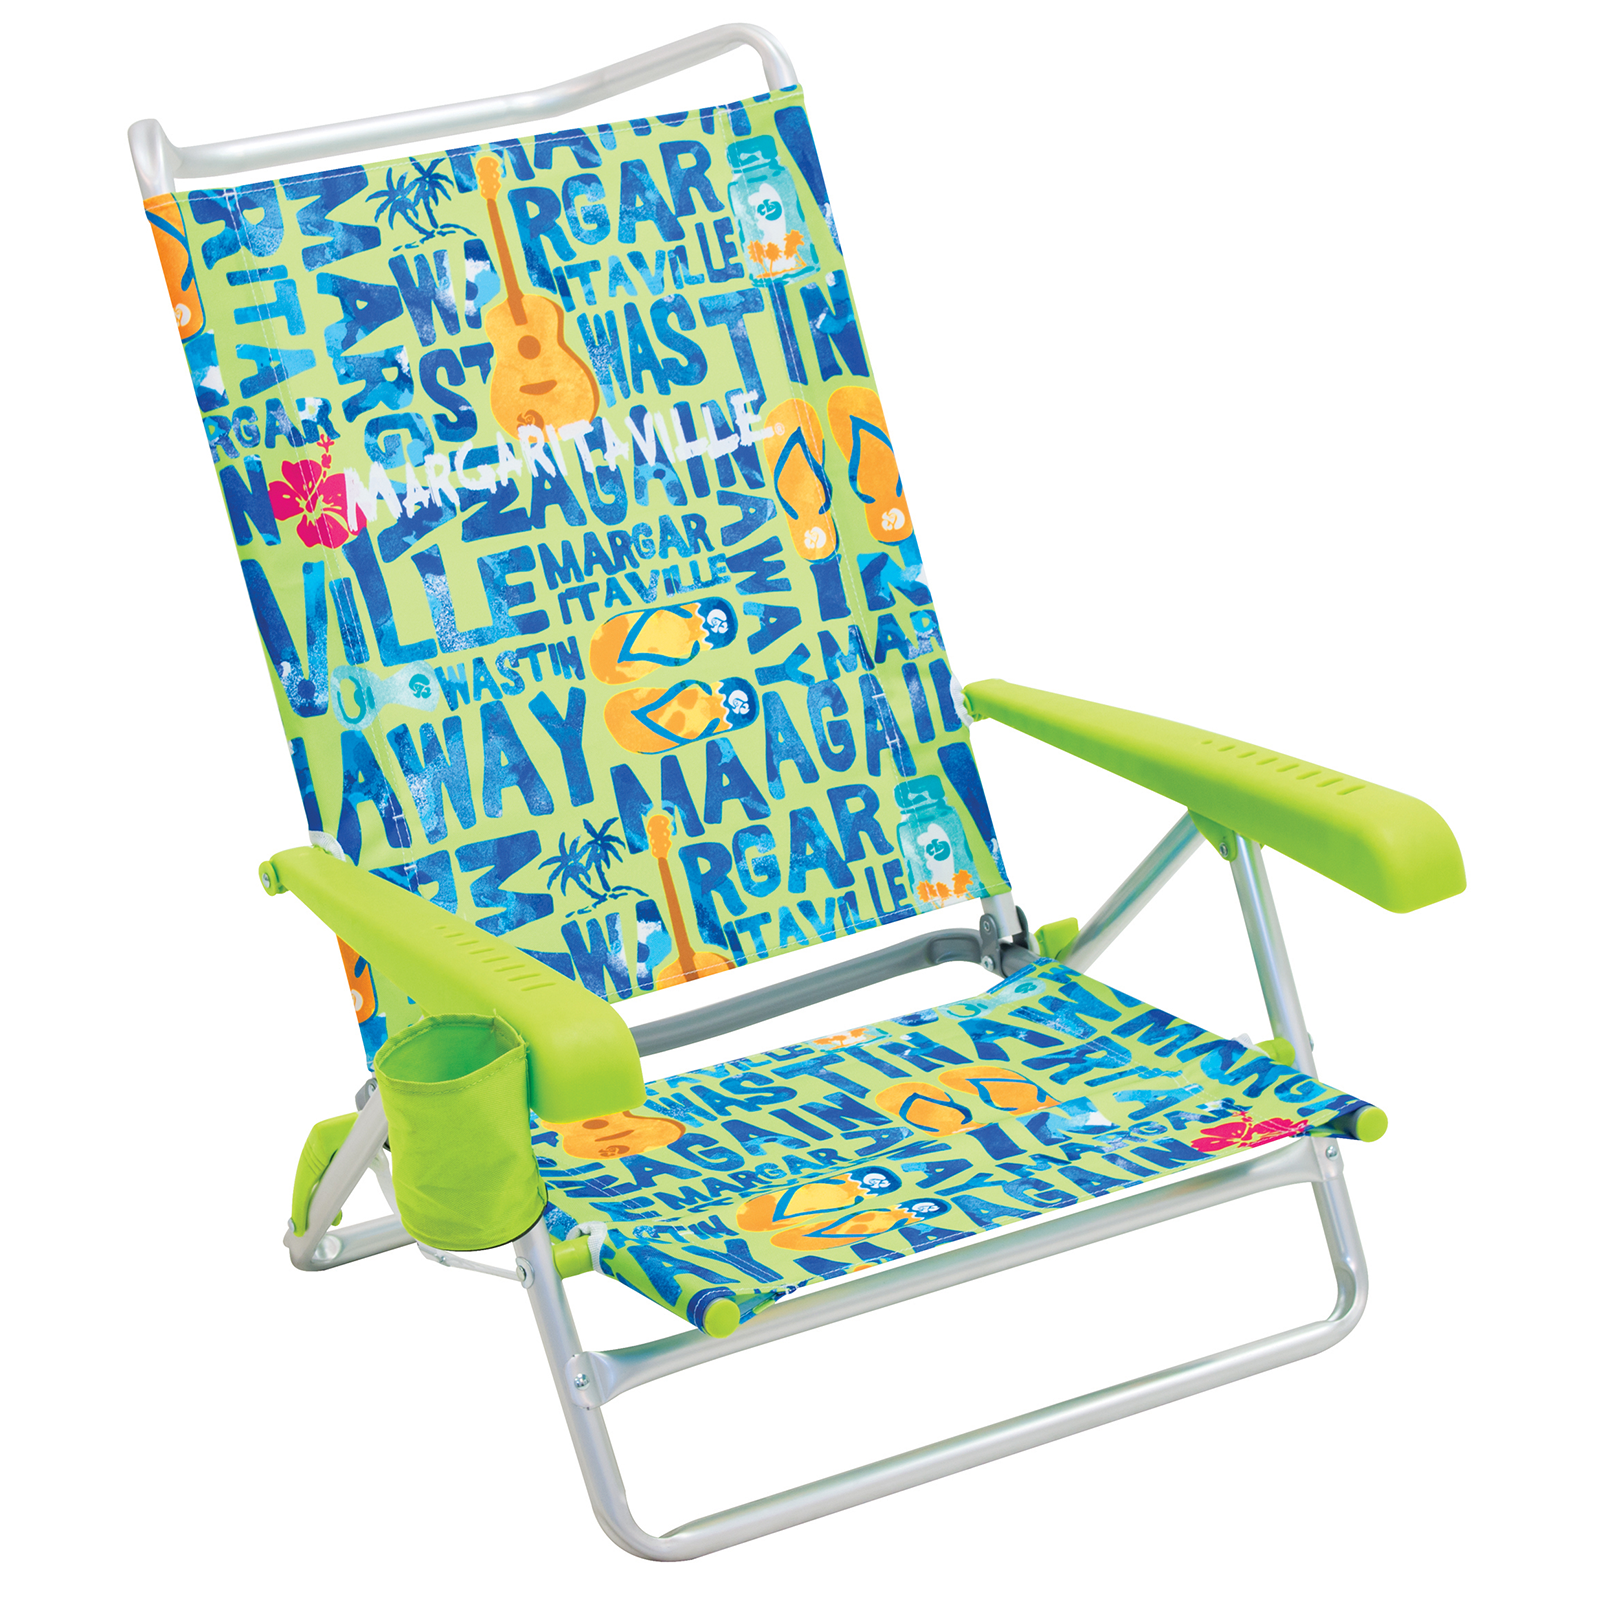 5 Position Lay Flat Chair Margaritaville Apparel Store